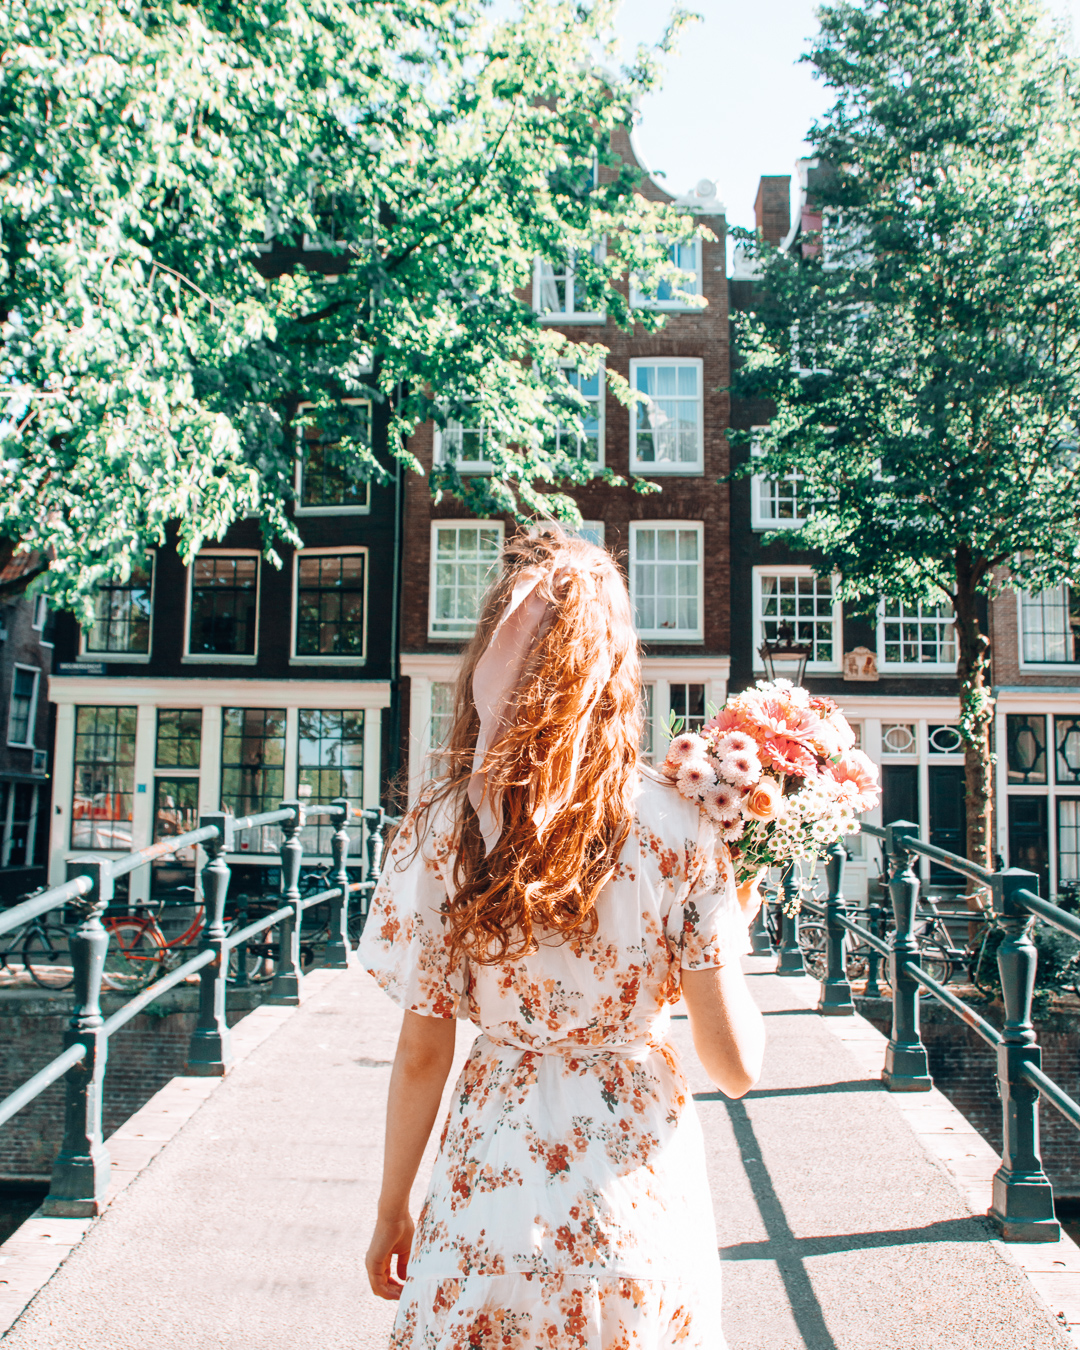 Girl standing on Melkmeisjesbrug in Amsterdam